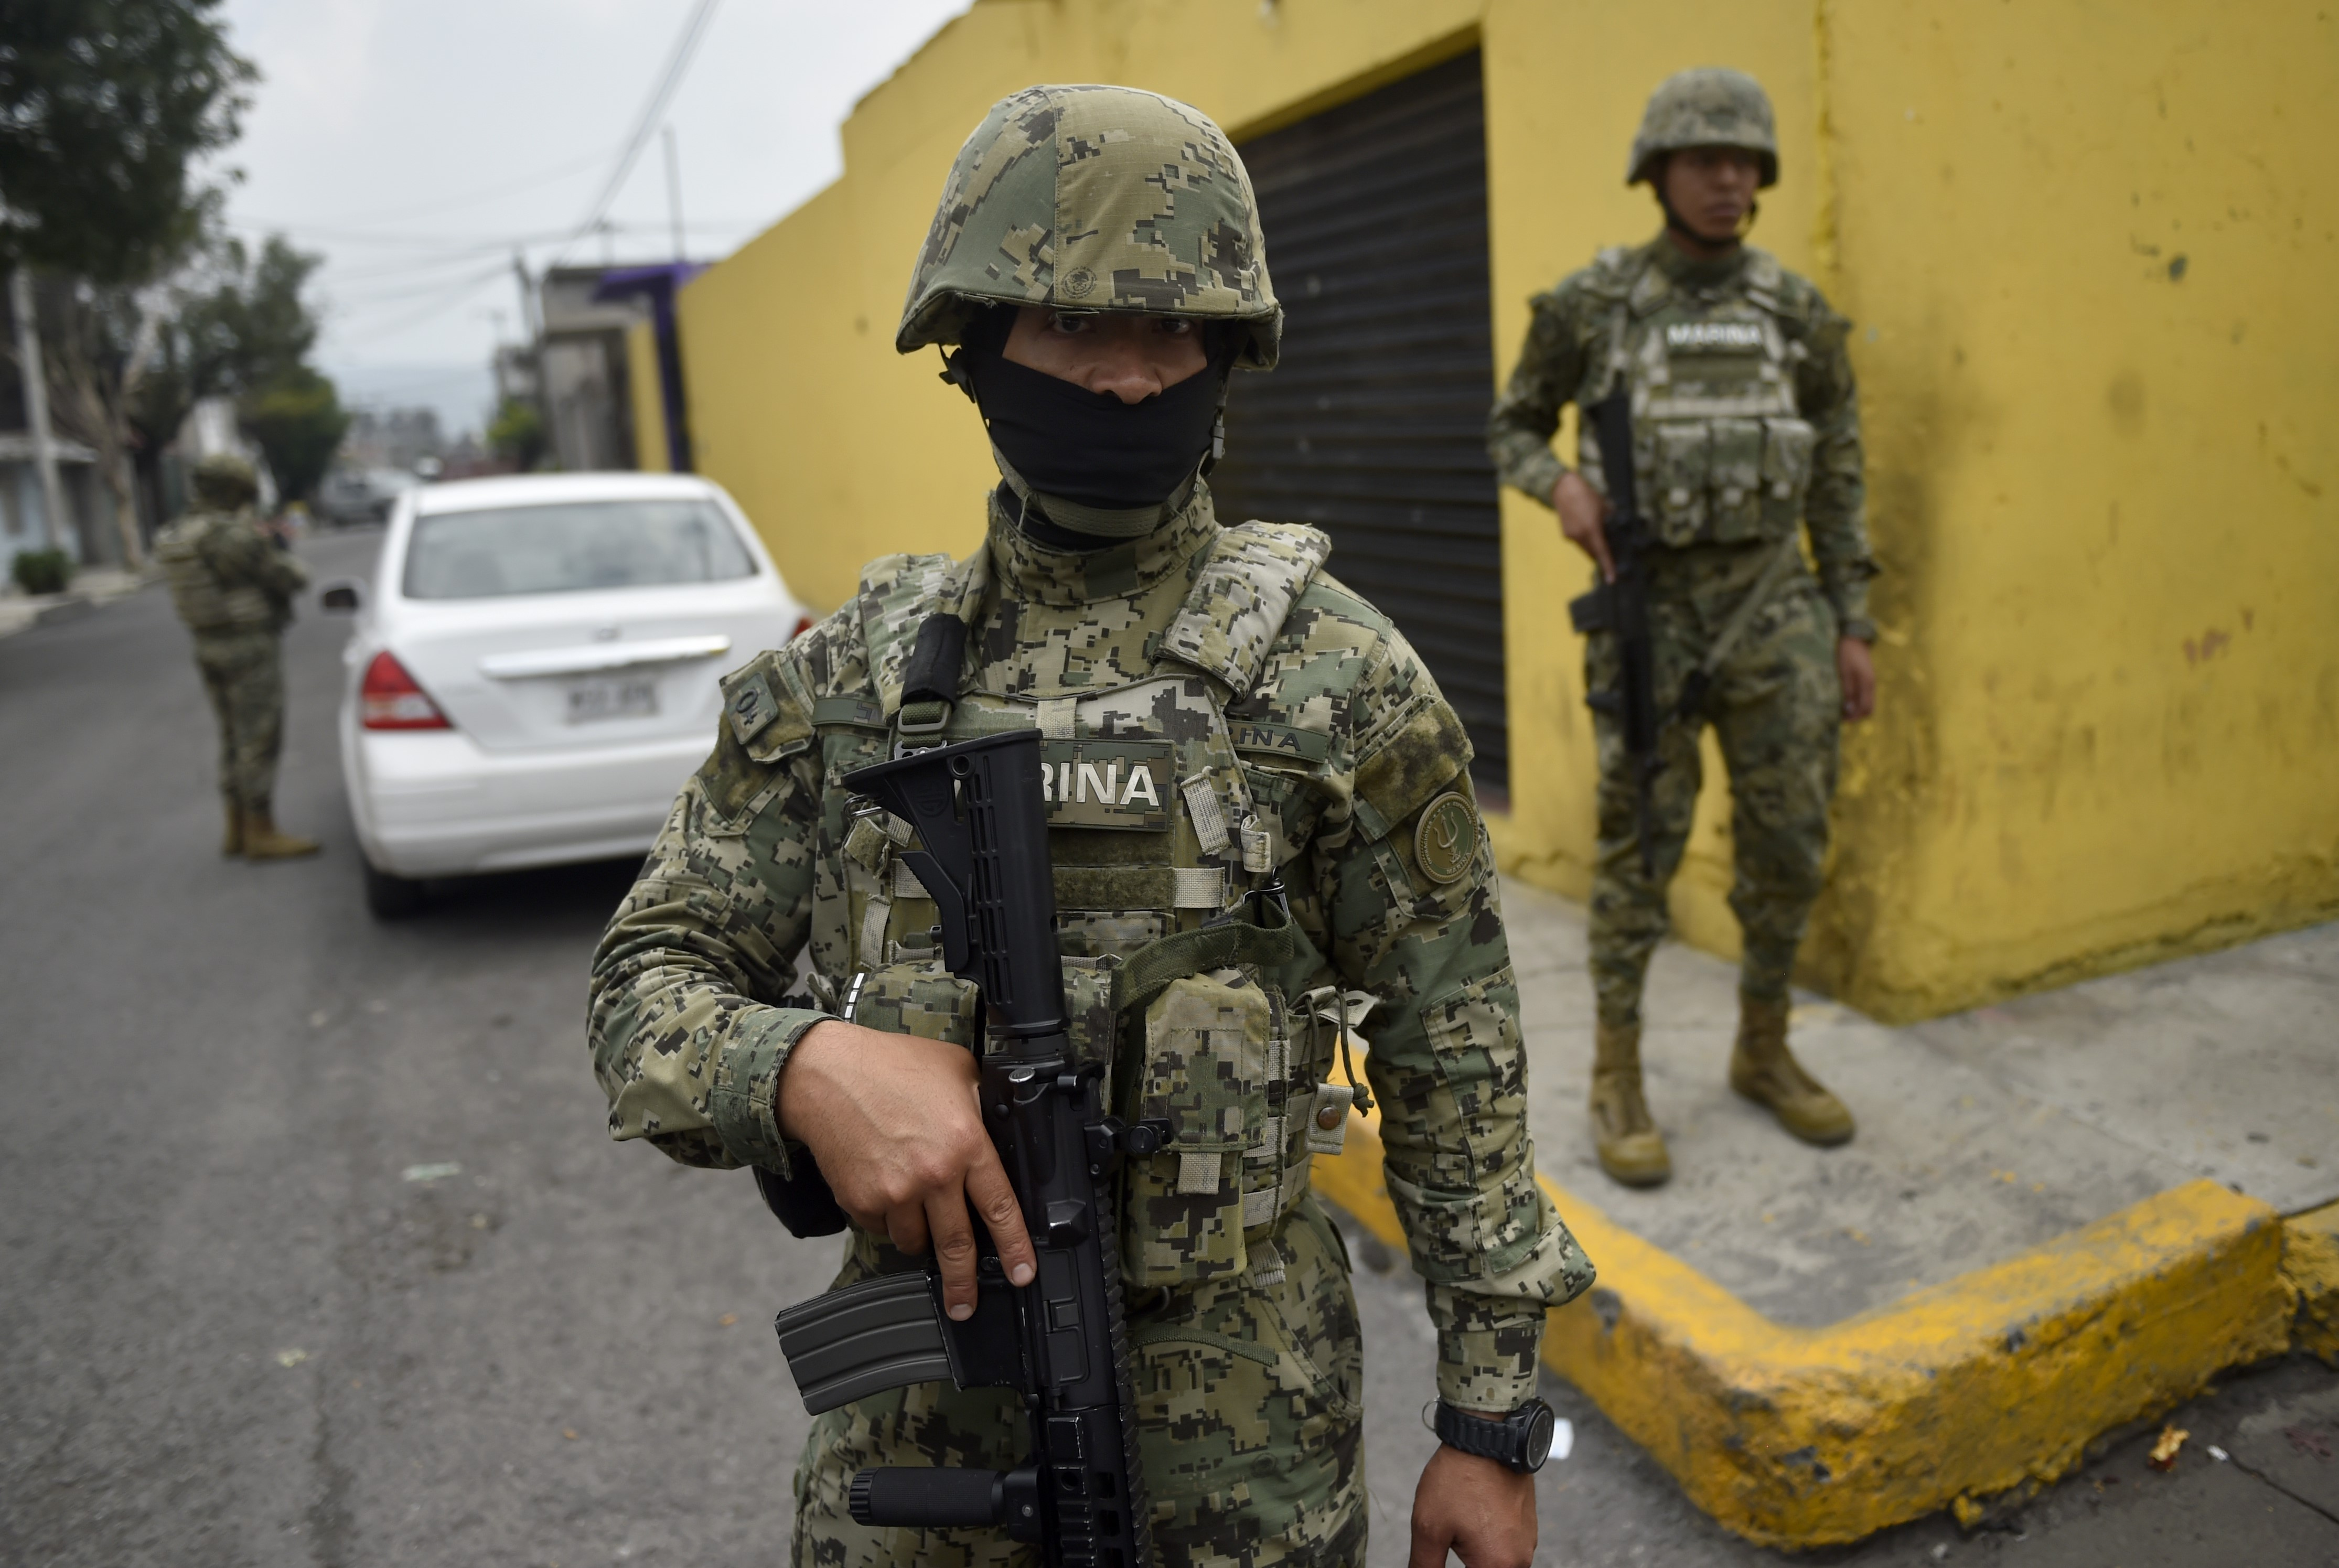 Mexican Navy members mount guard following a shoot-out in Tlahuac, Mexico City, on July 20, 2017.